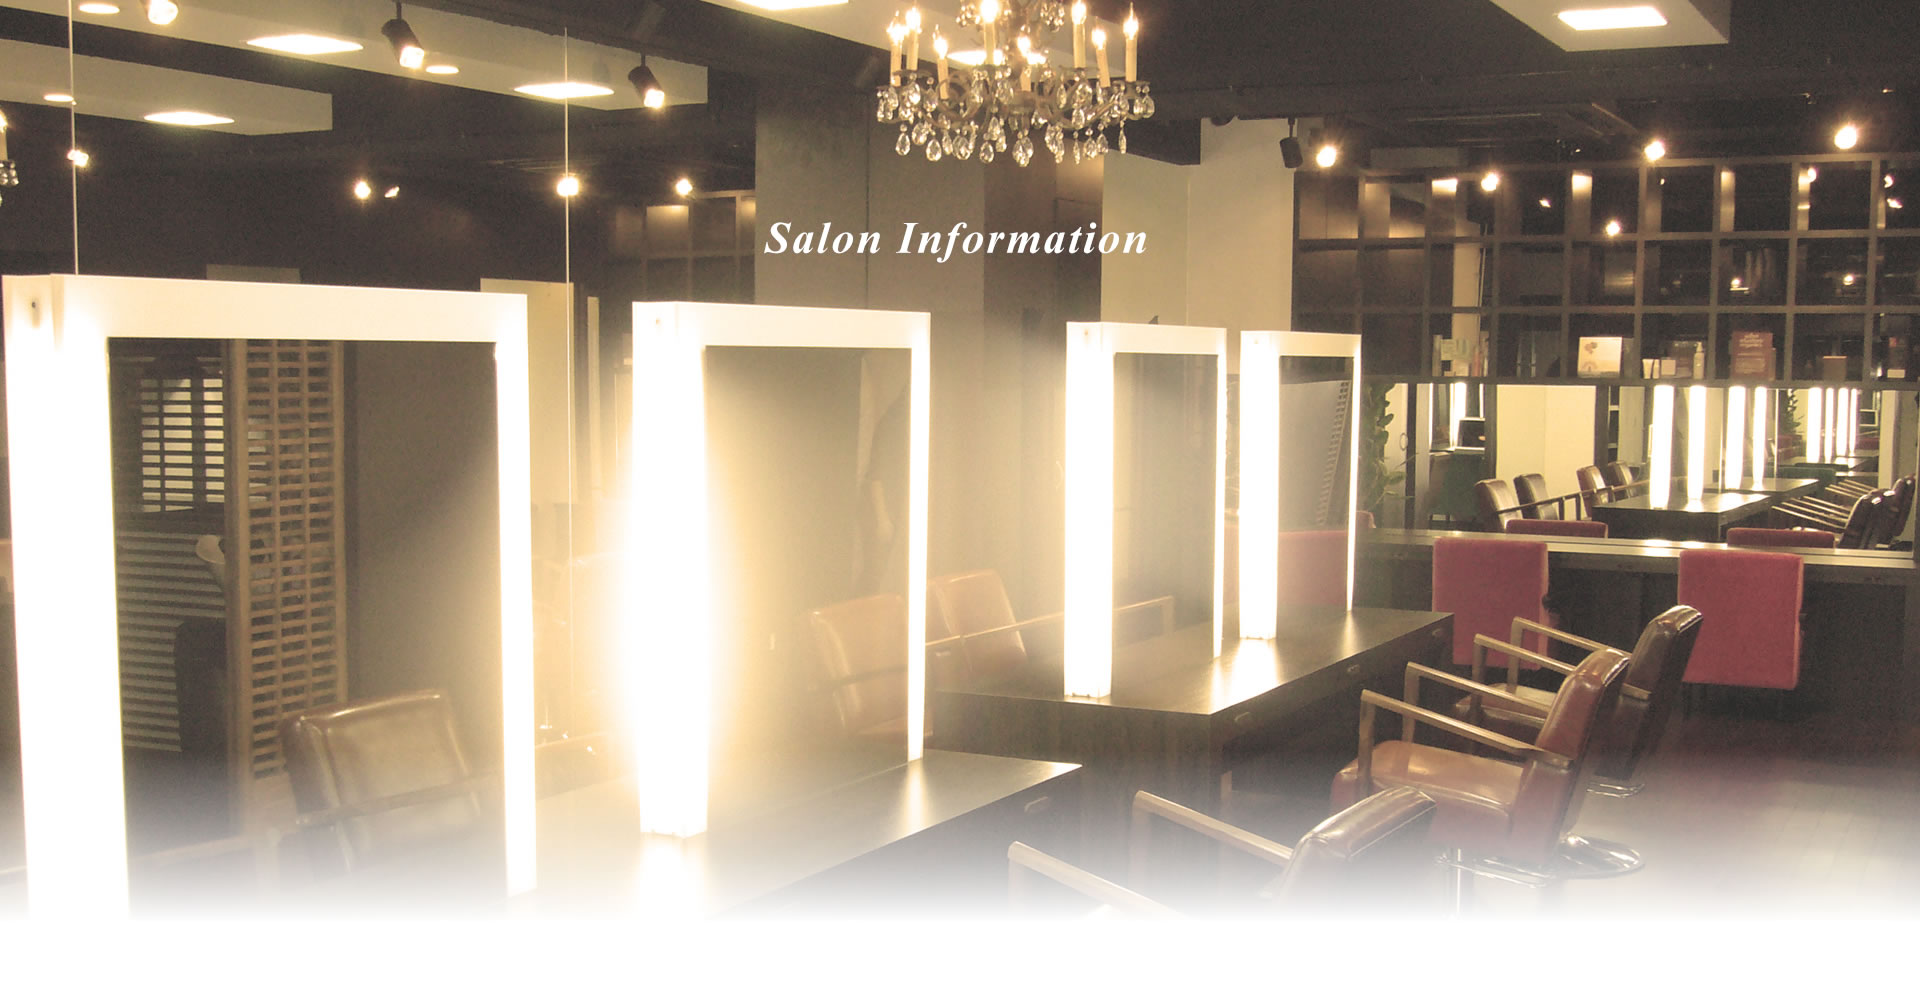 Salon Information